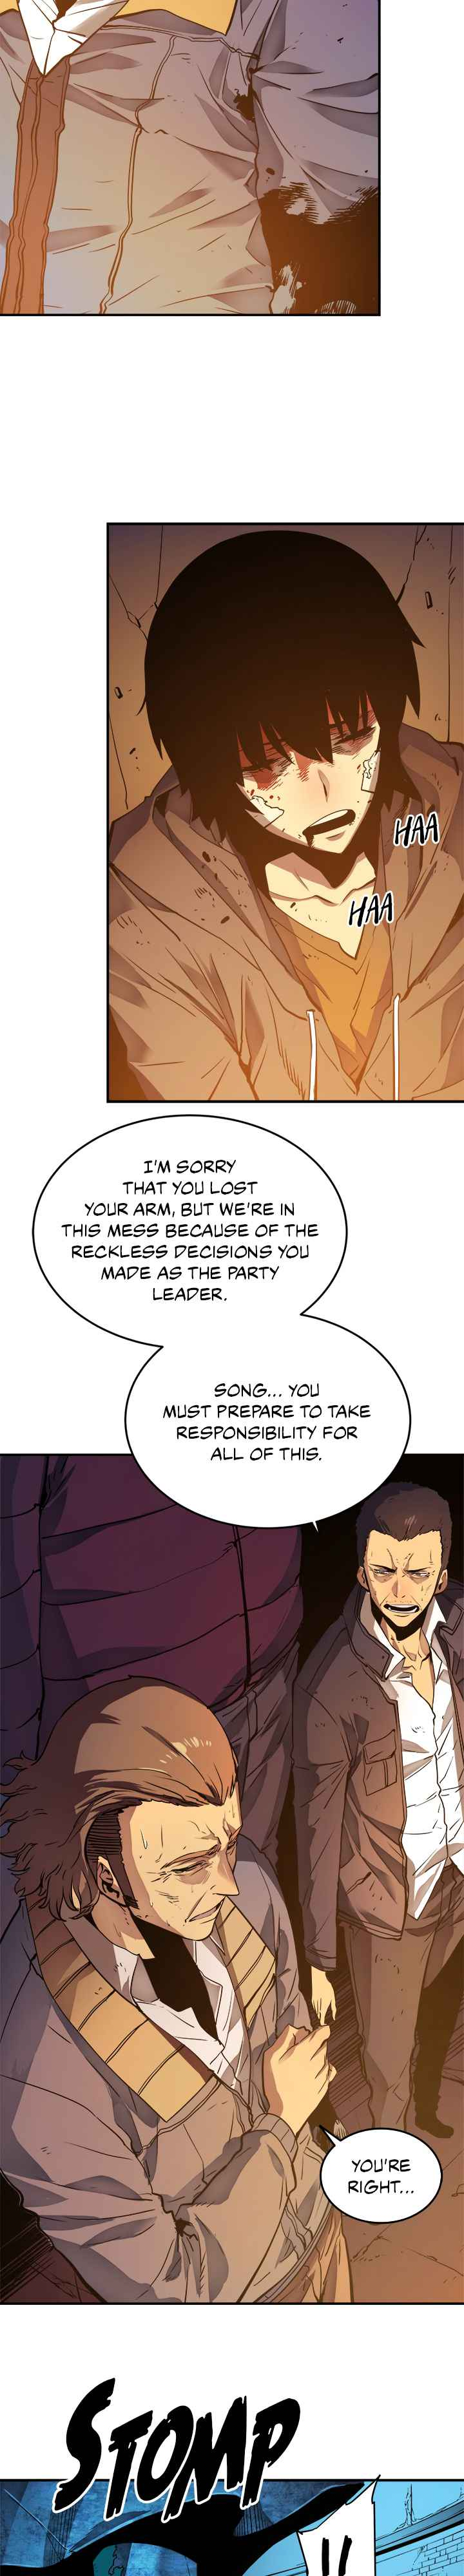 Solo Leveling Chapter 8 Page 5